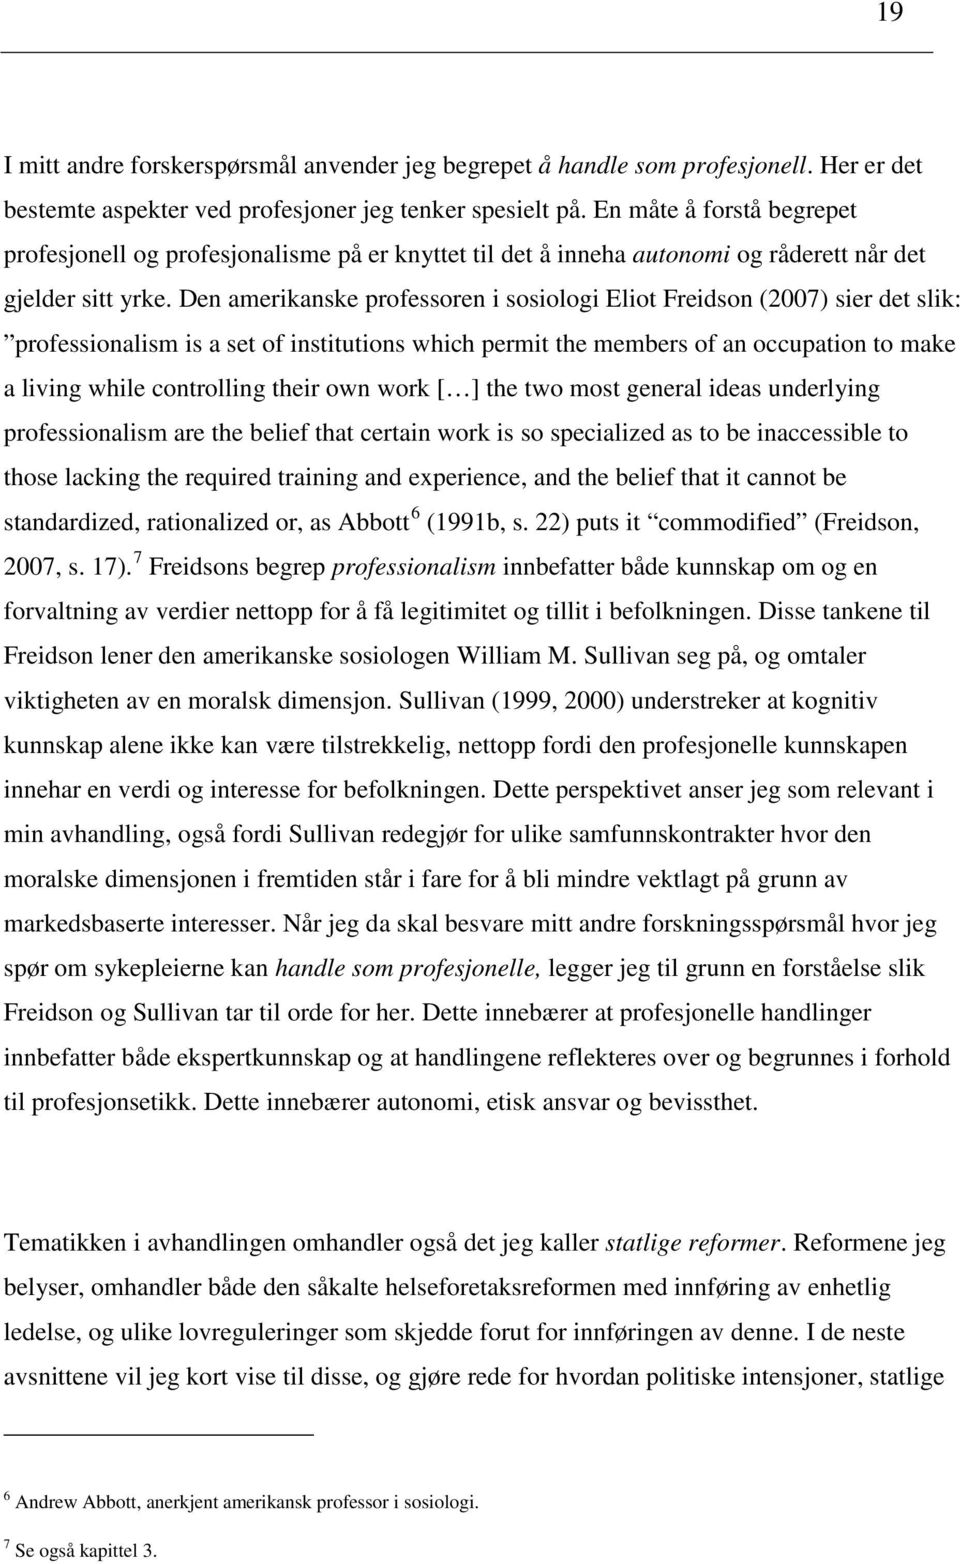 Den amerikanske professoren i sosiologi Eliot Freidson (2007) sier det slik: professionalism is a set of institutions which permit the members of an occupation to make a living while controlling